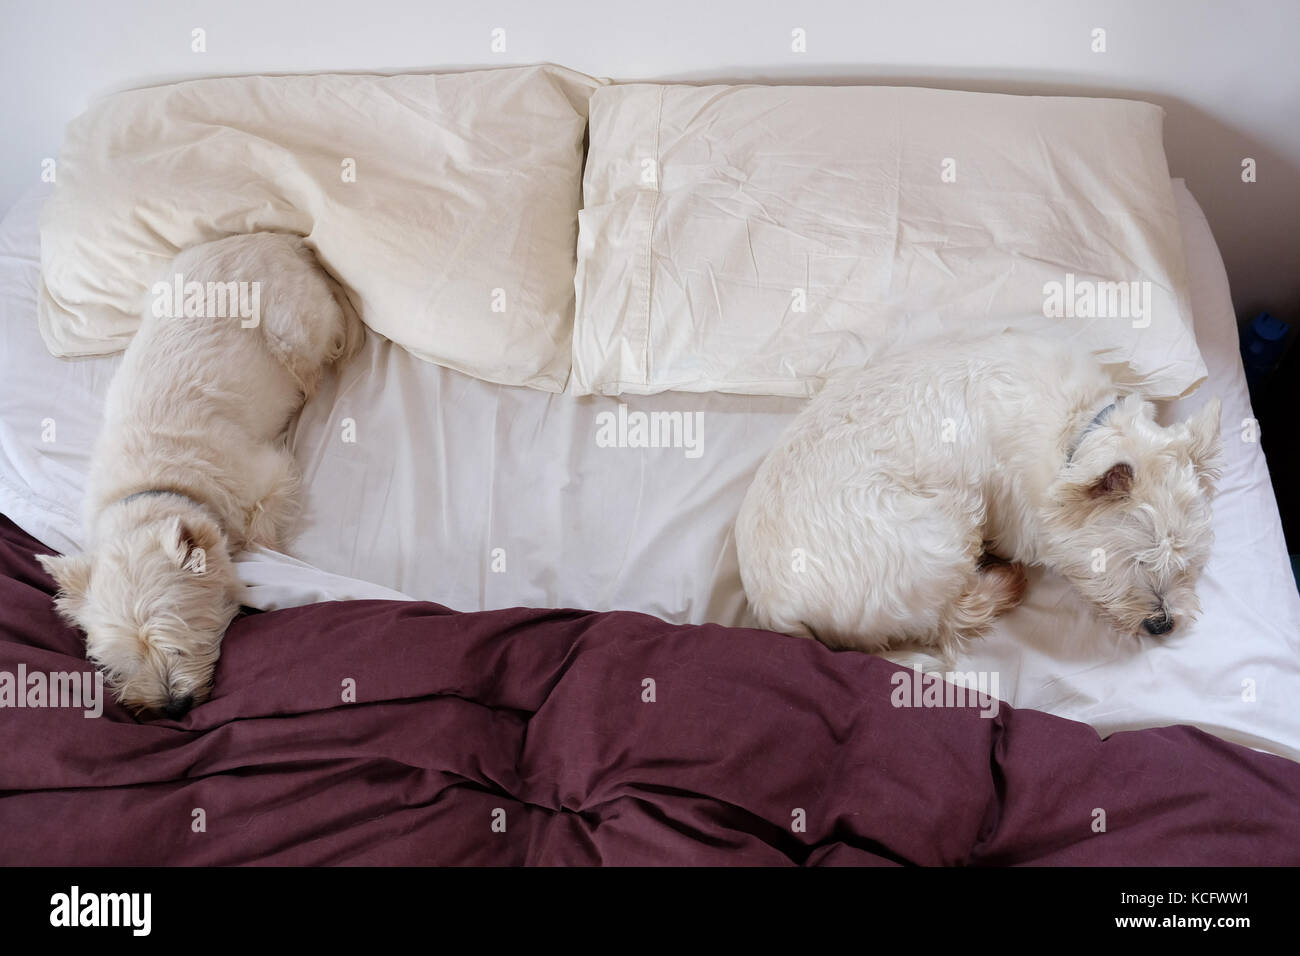 Two west highland white terrier westie dogs sleeping on a messy crumpled bed. The comforter is covered in fur. - Stock Image